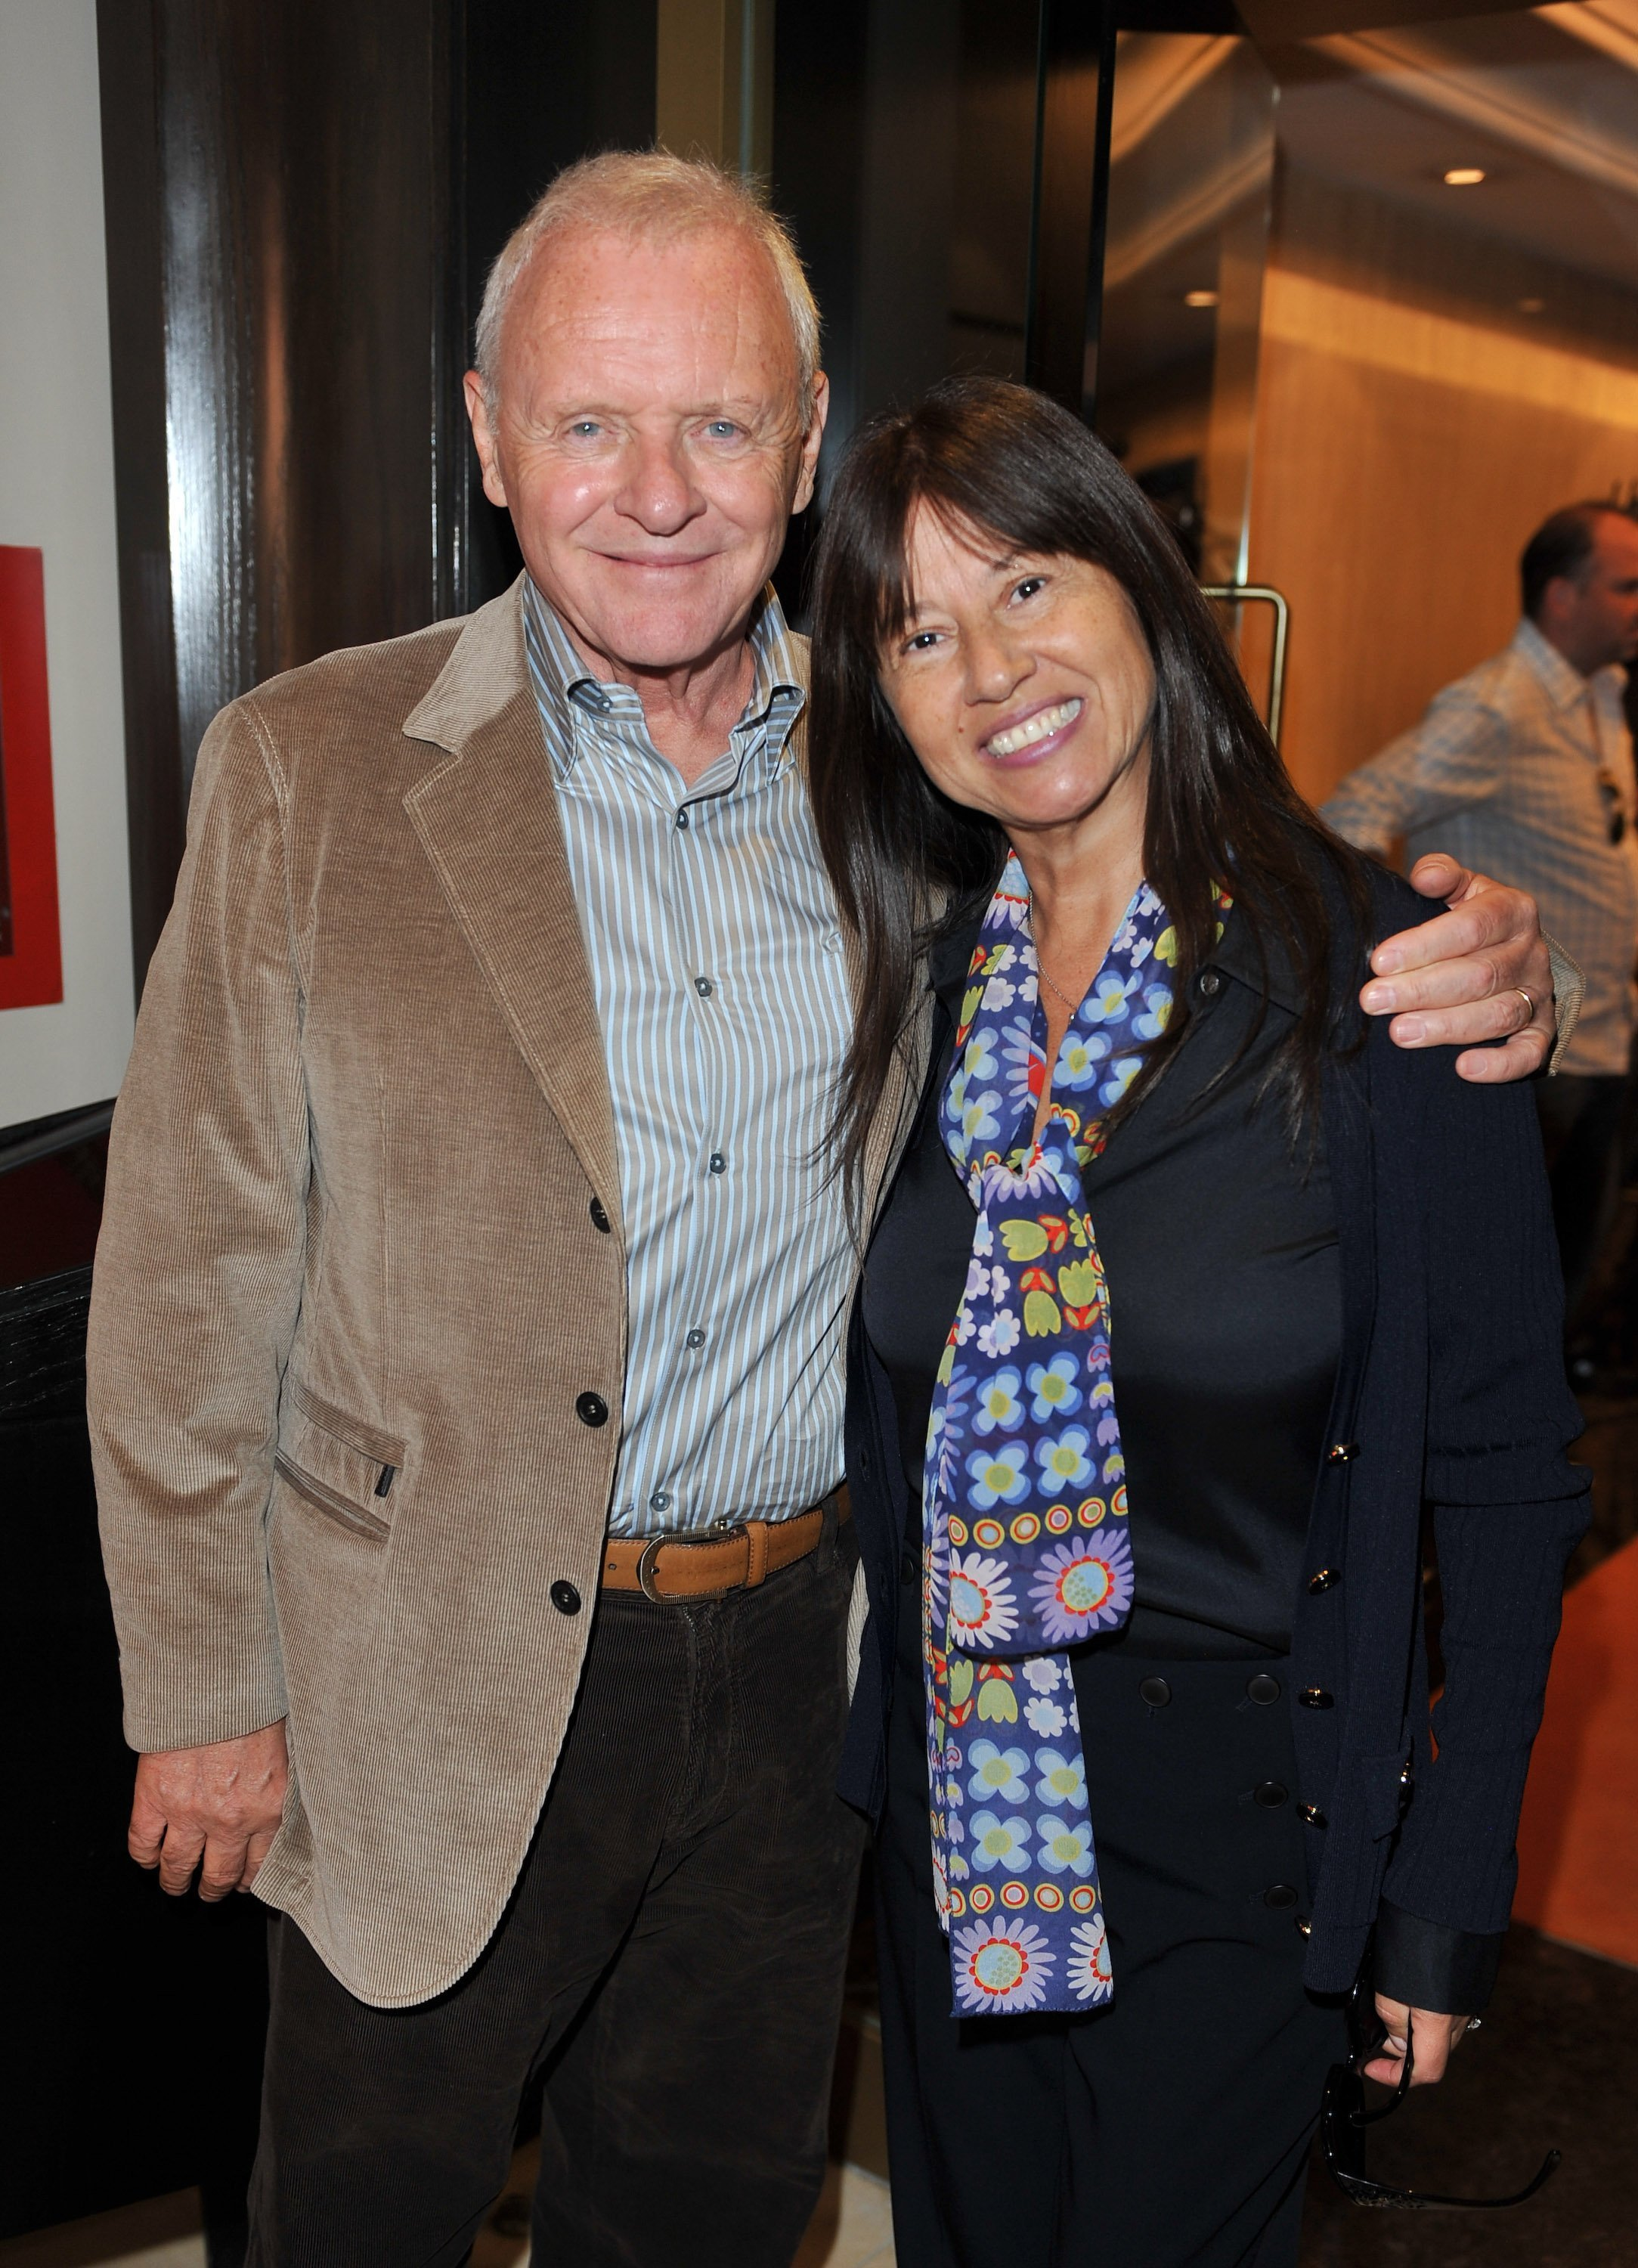 Anthony Hopkins and Stella Arroyave attend the George Christie Luncheon at the Four Seasons Hotel on September 11, 2010, in Toronto, Canada. | Source: Getty Images.